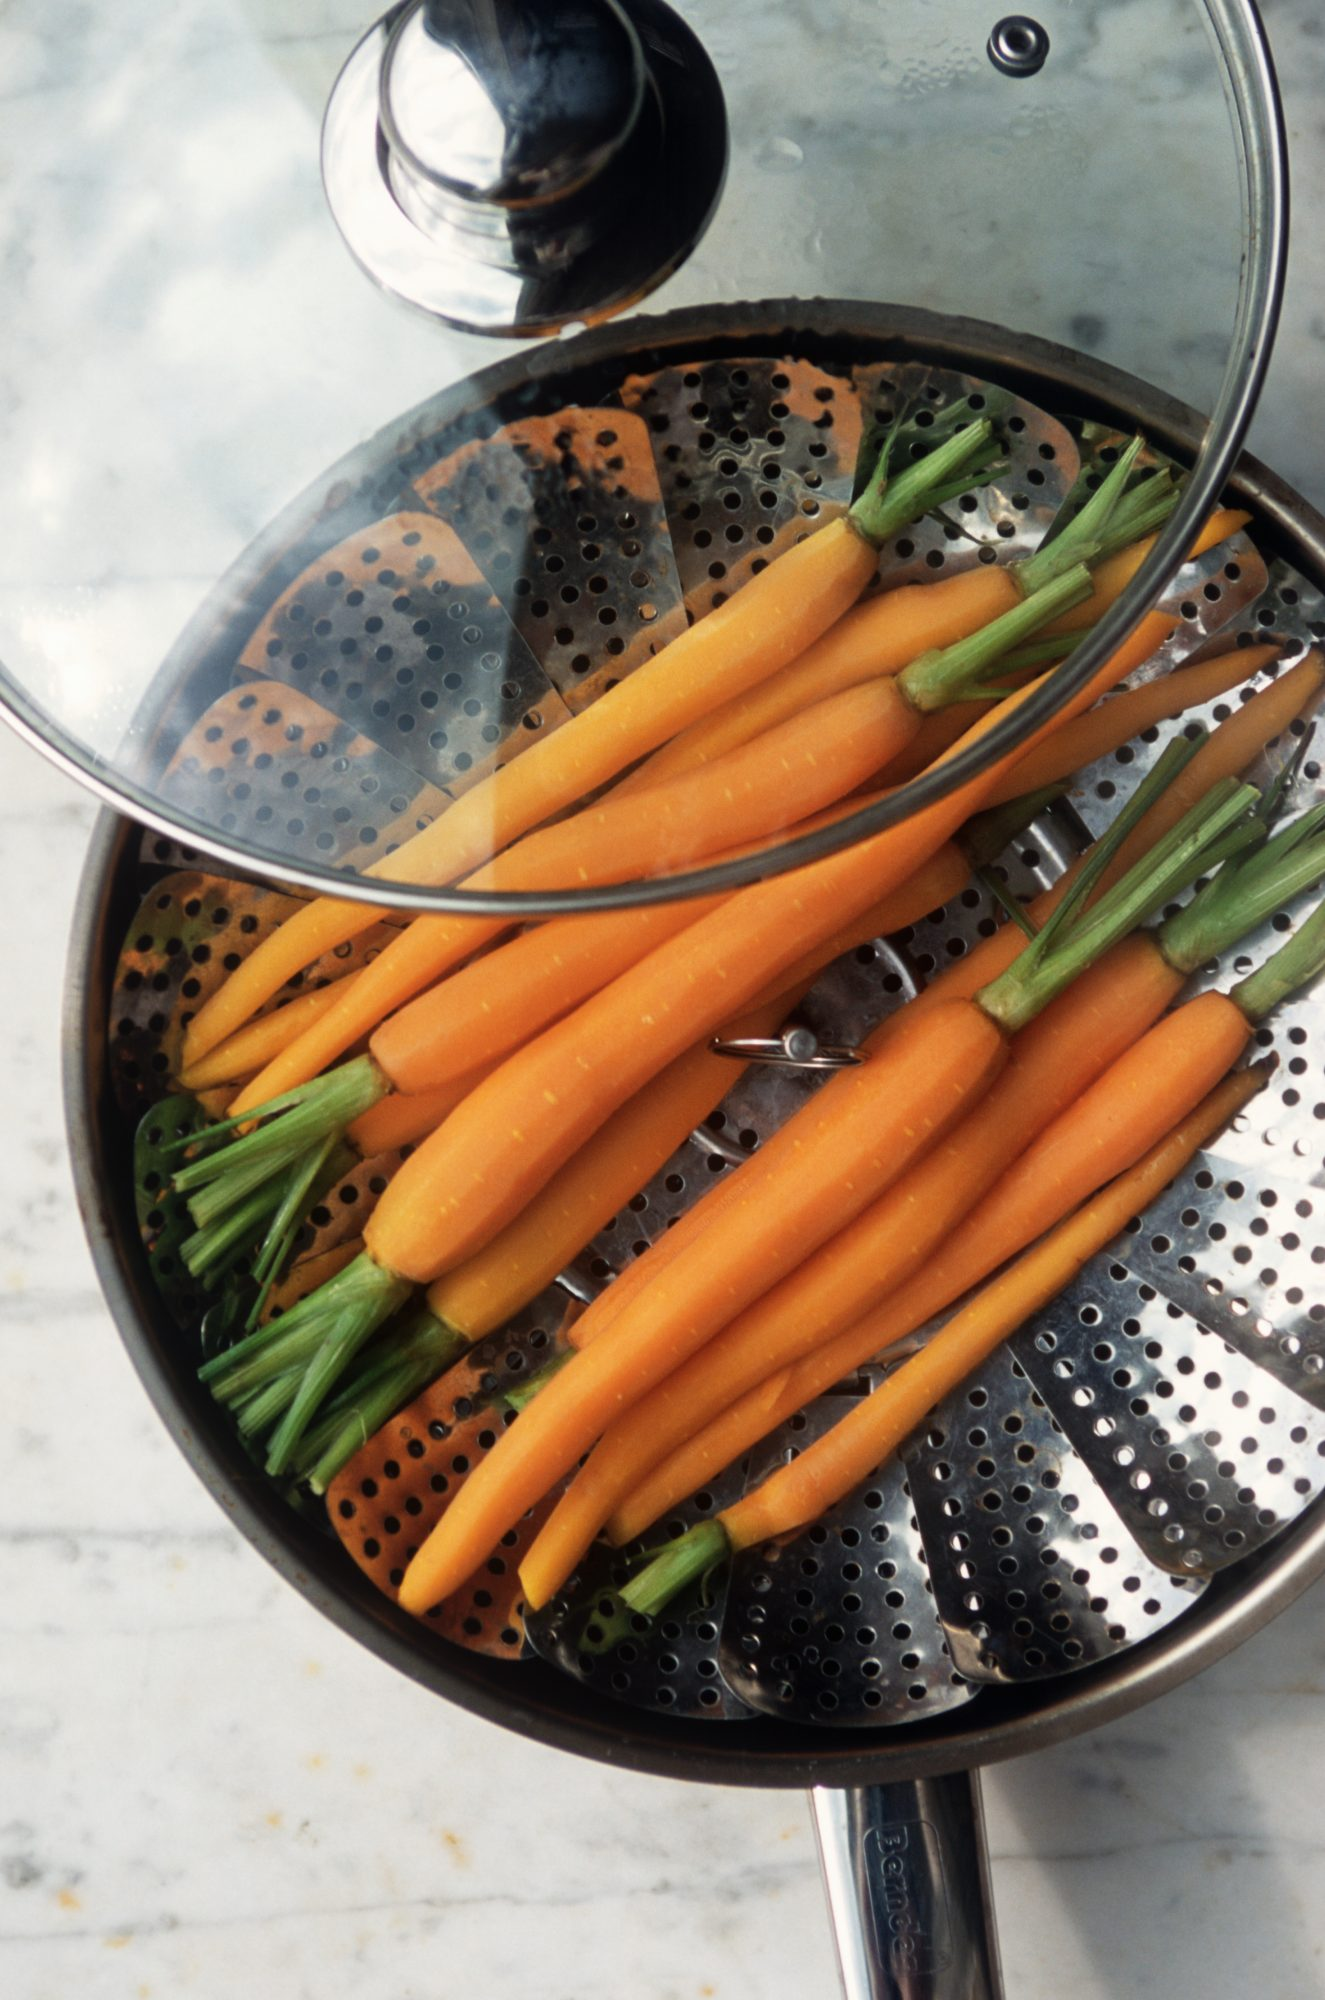 5-steaming-boiling-cooking-method-carrot